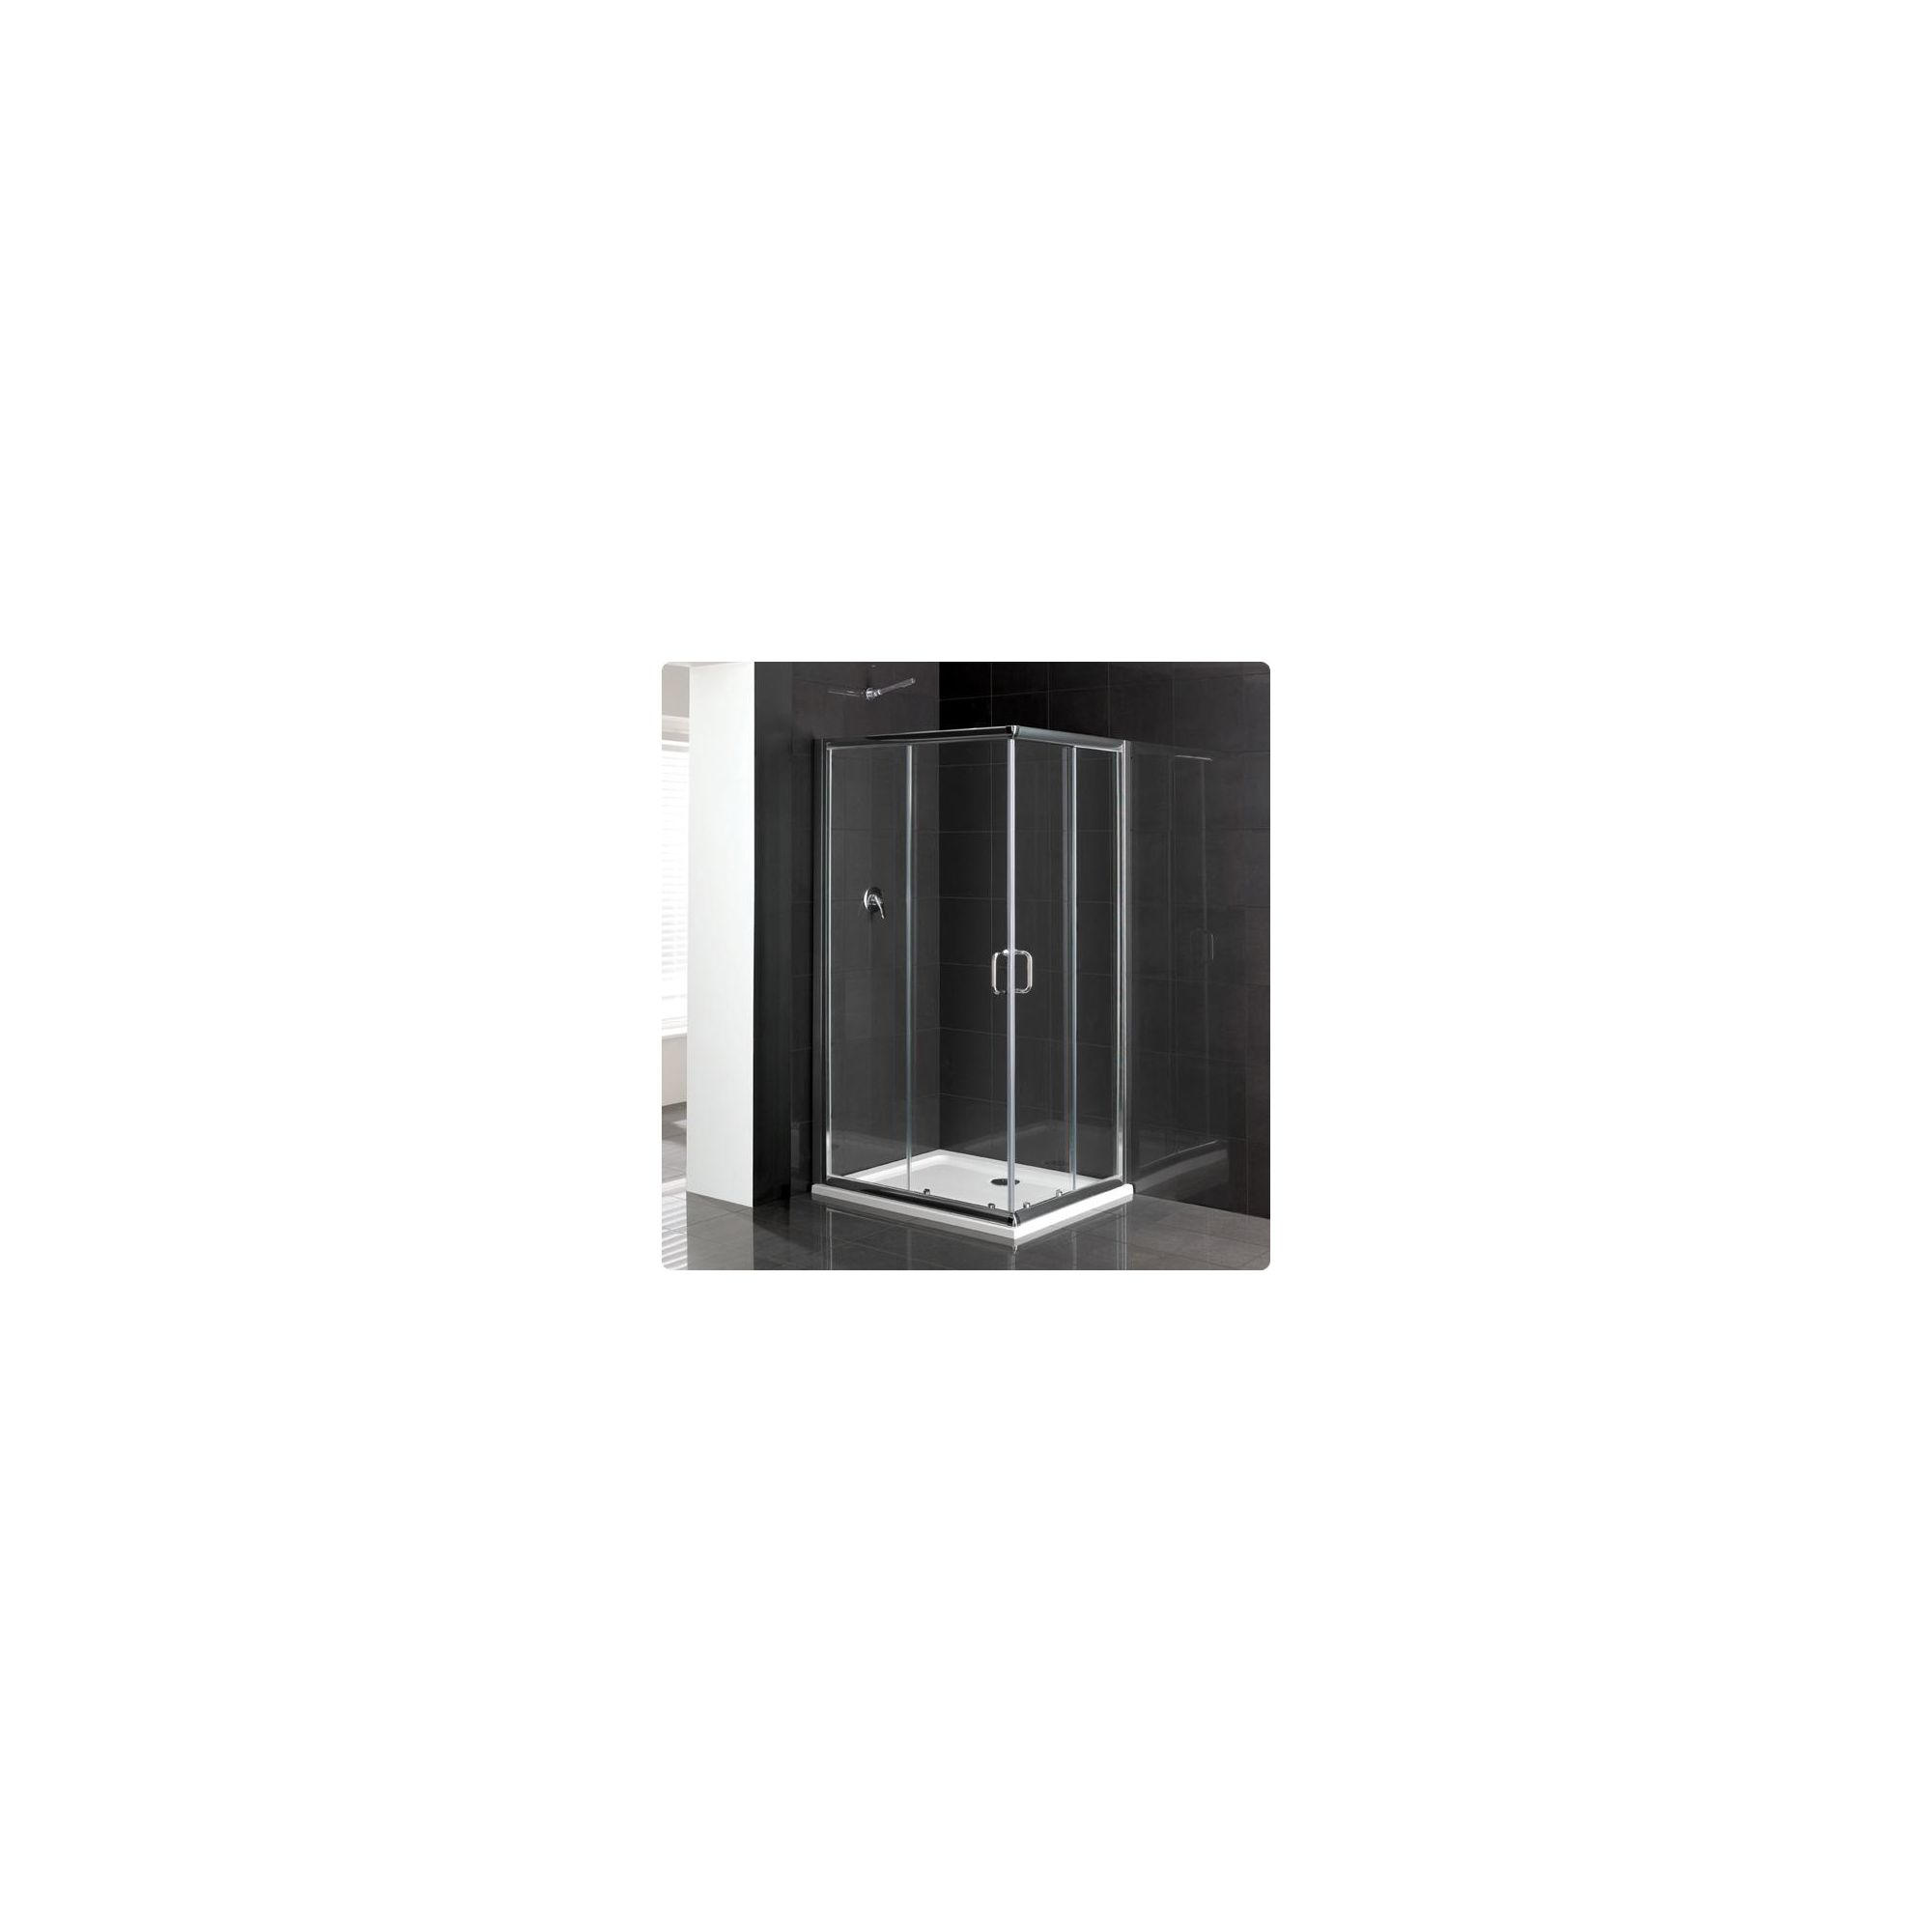 Duchy Elite Silver Offset Corner Entry Shower Enclosure 1000mm x 760mm, Standard Tray, 6mm Glass at Tesco Direct